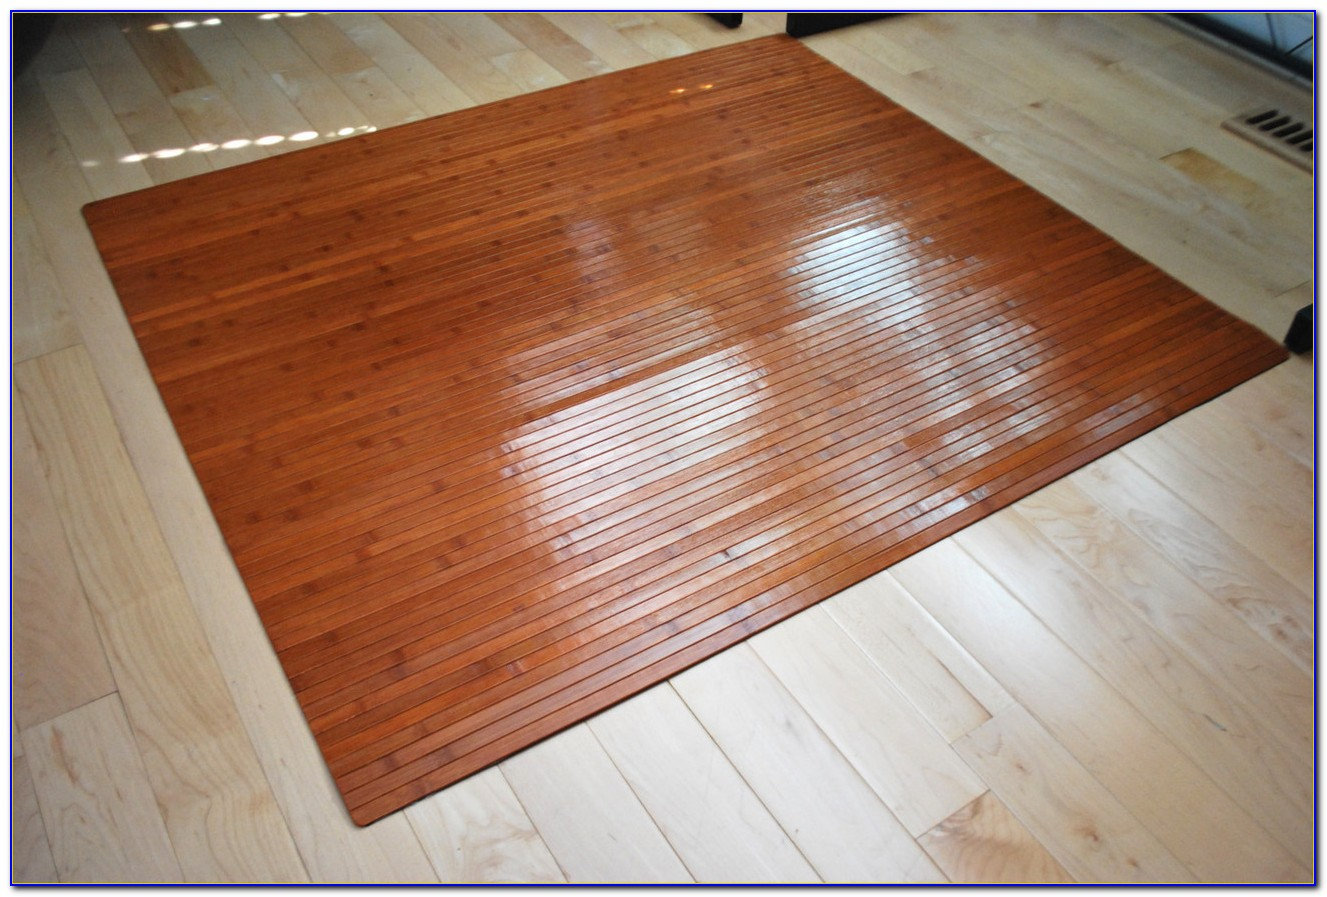 Wood Floor Protectors For Chair Legs